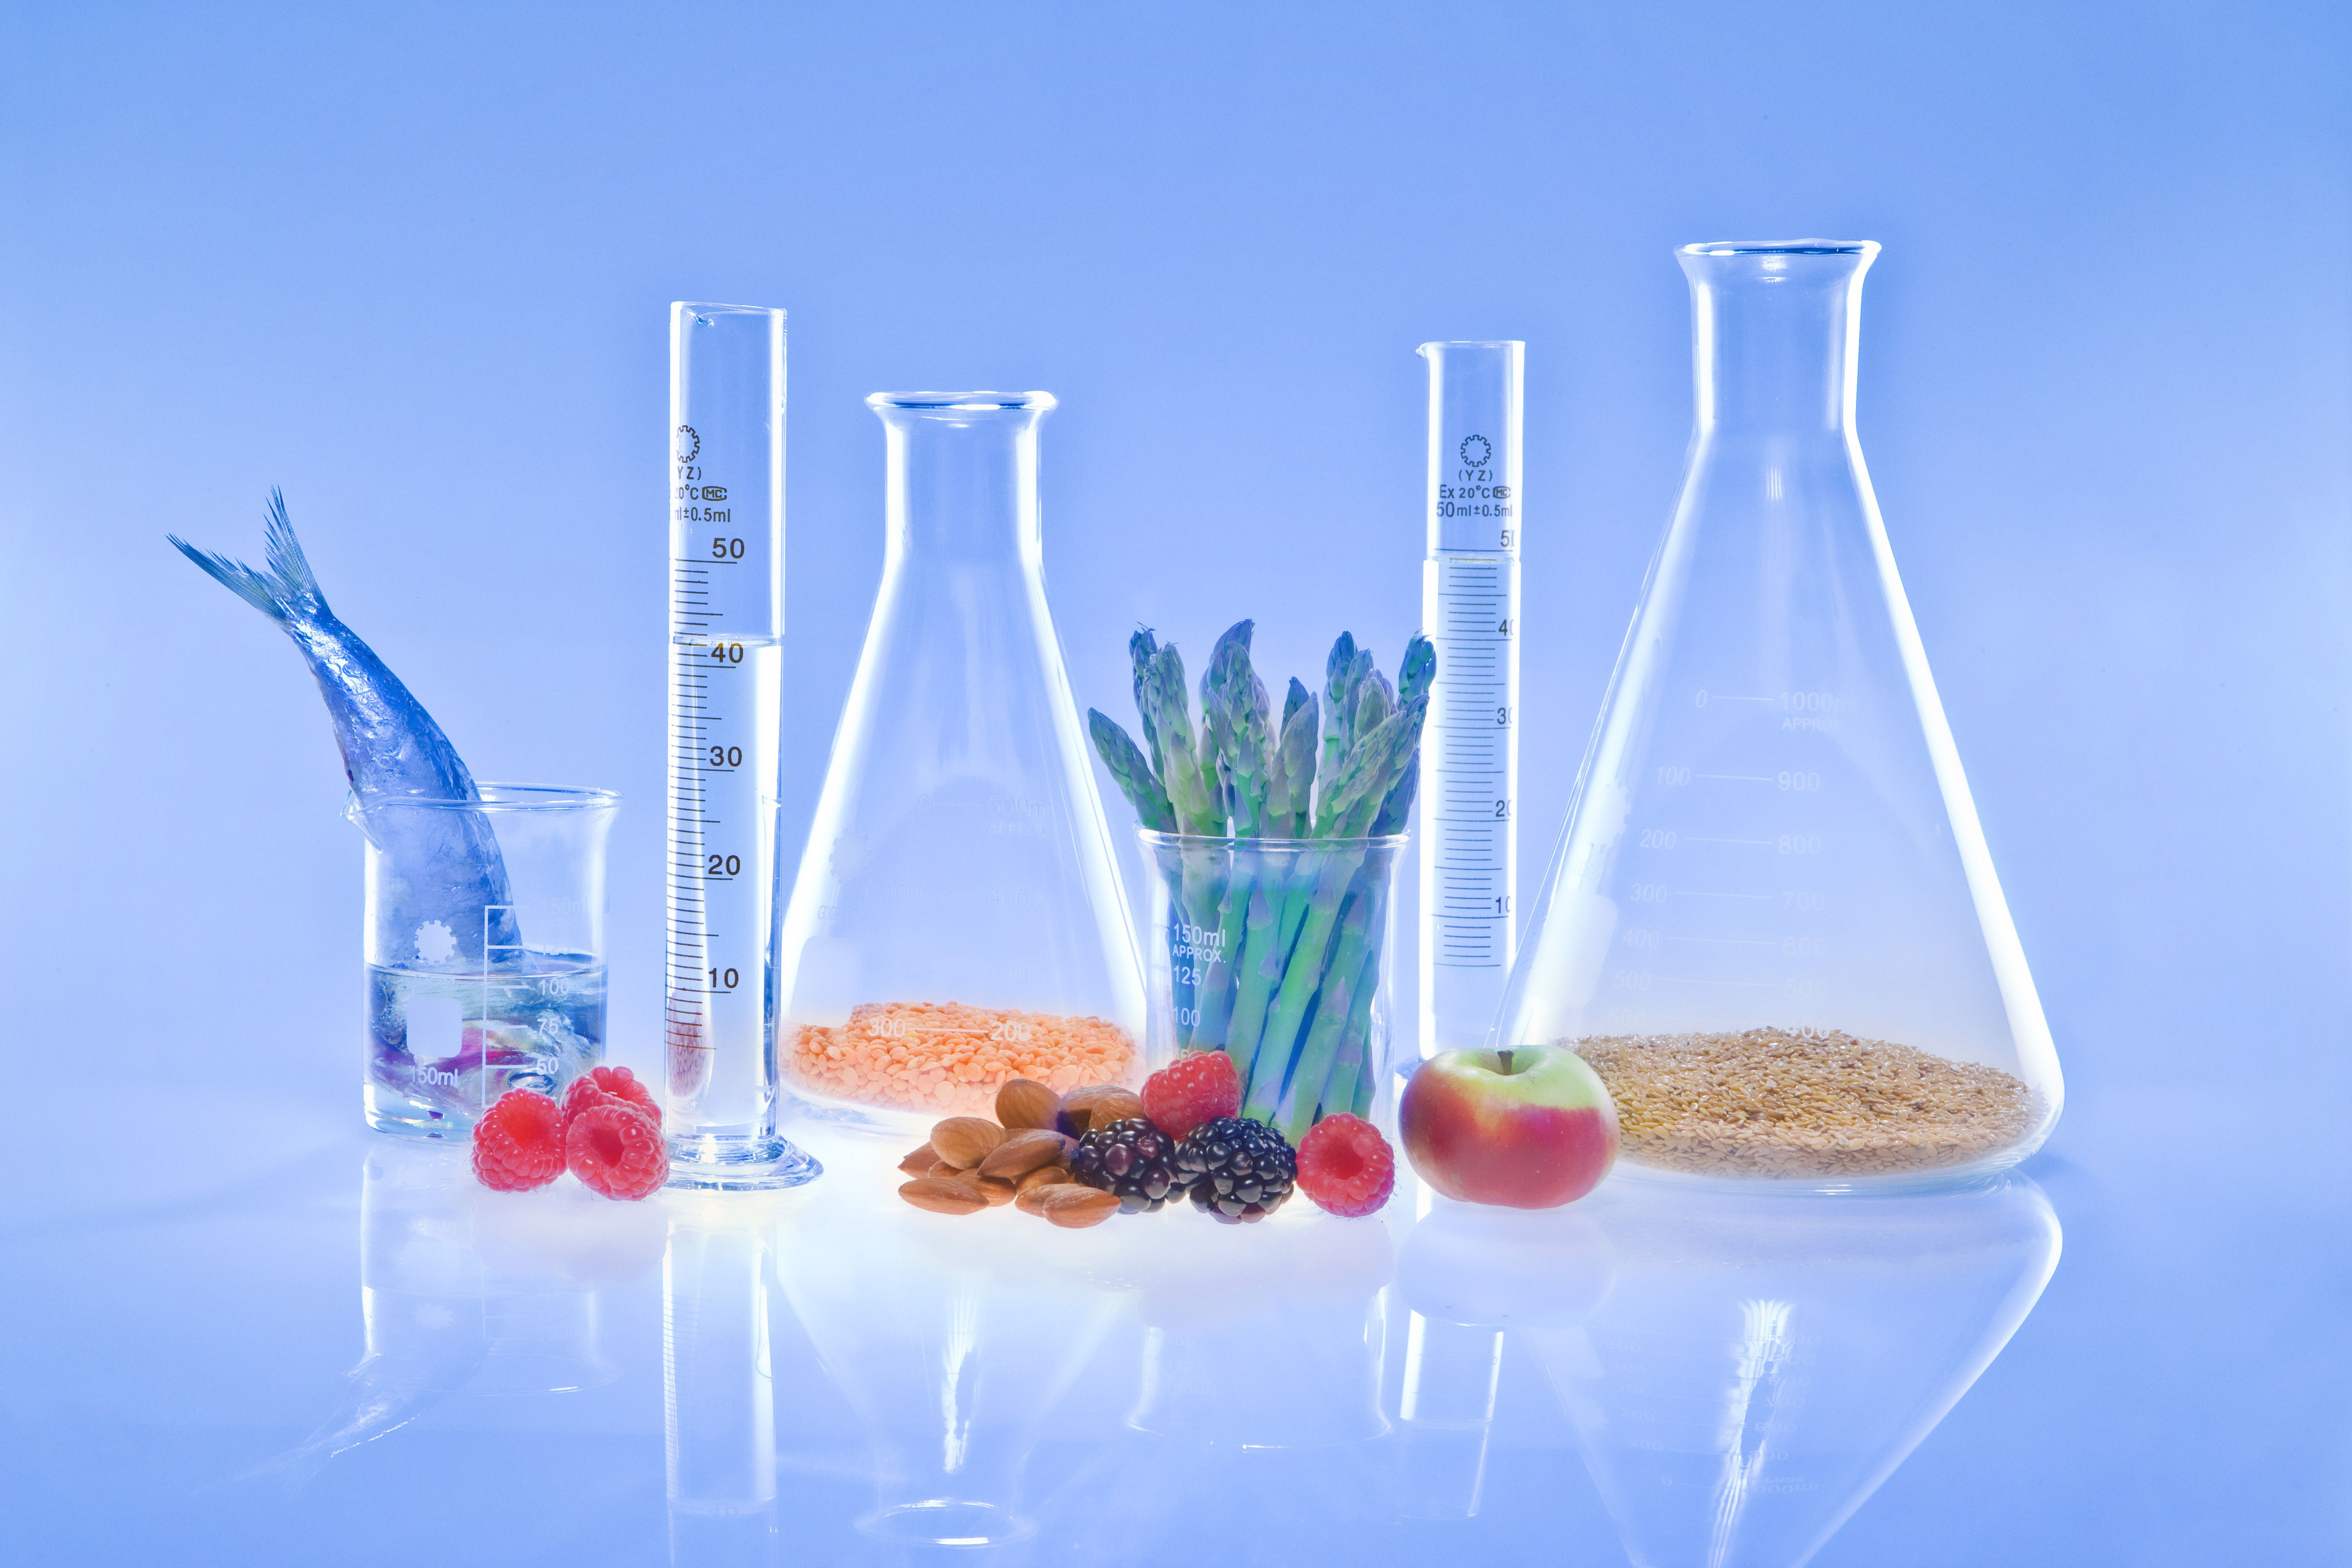 Chemistry in medicine | Its Role and Importance in Health Care